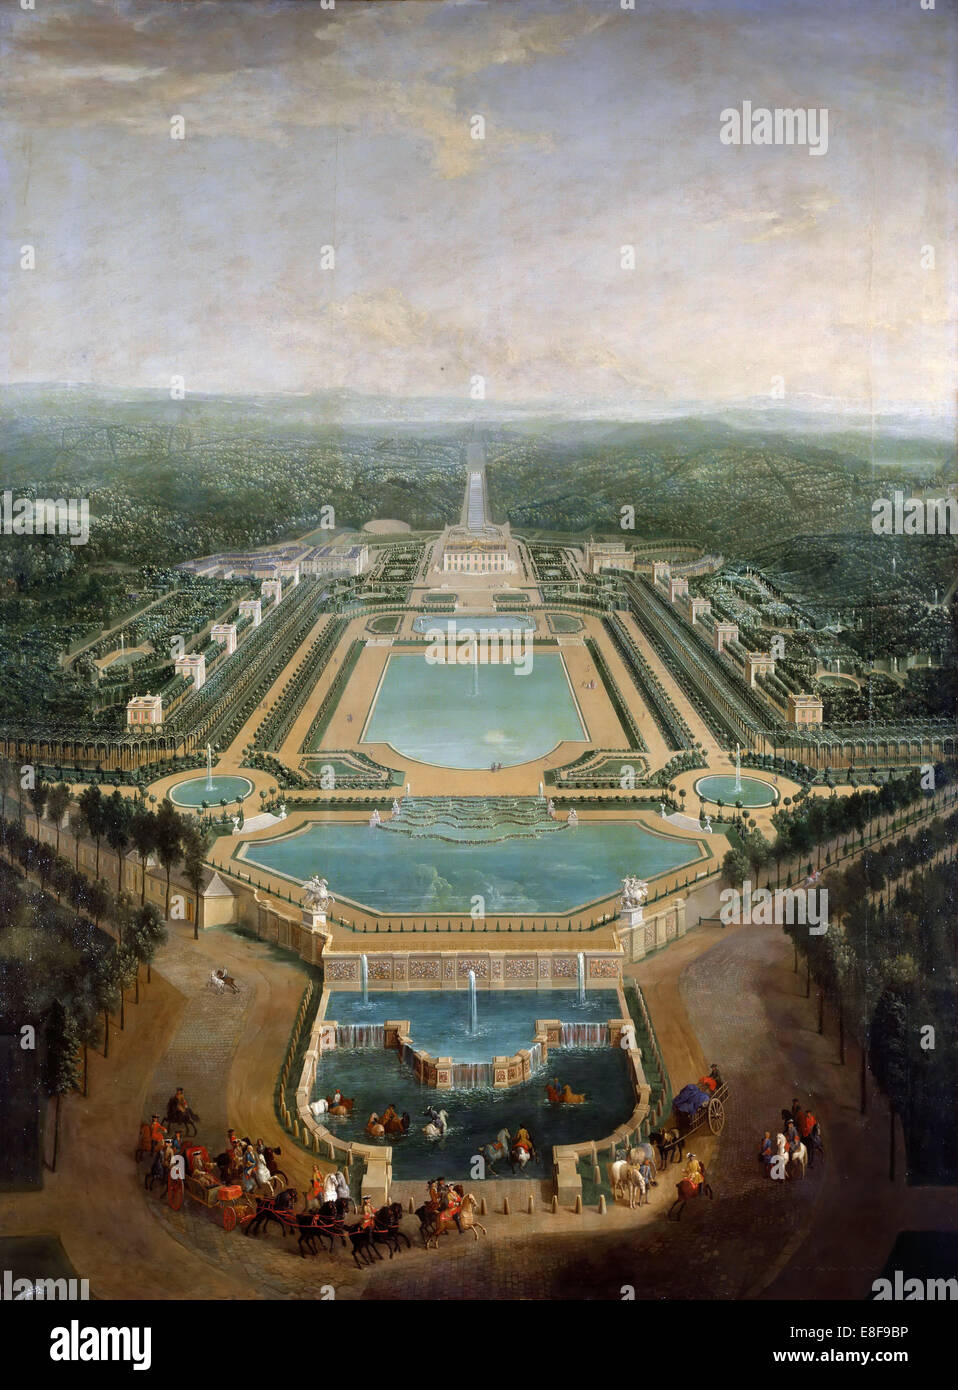 General view of the chateau and gardens at Marly, around 1724. Artist: Martin, Pierre-Denis II (1663-1742) - Stock Image